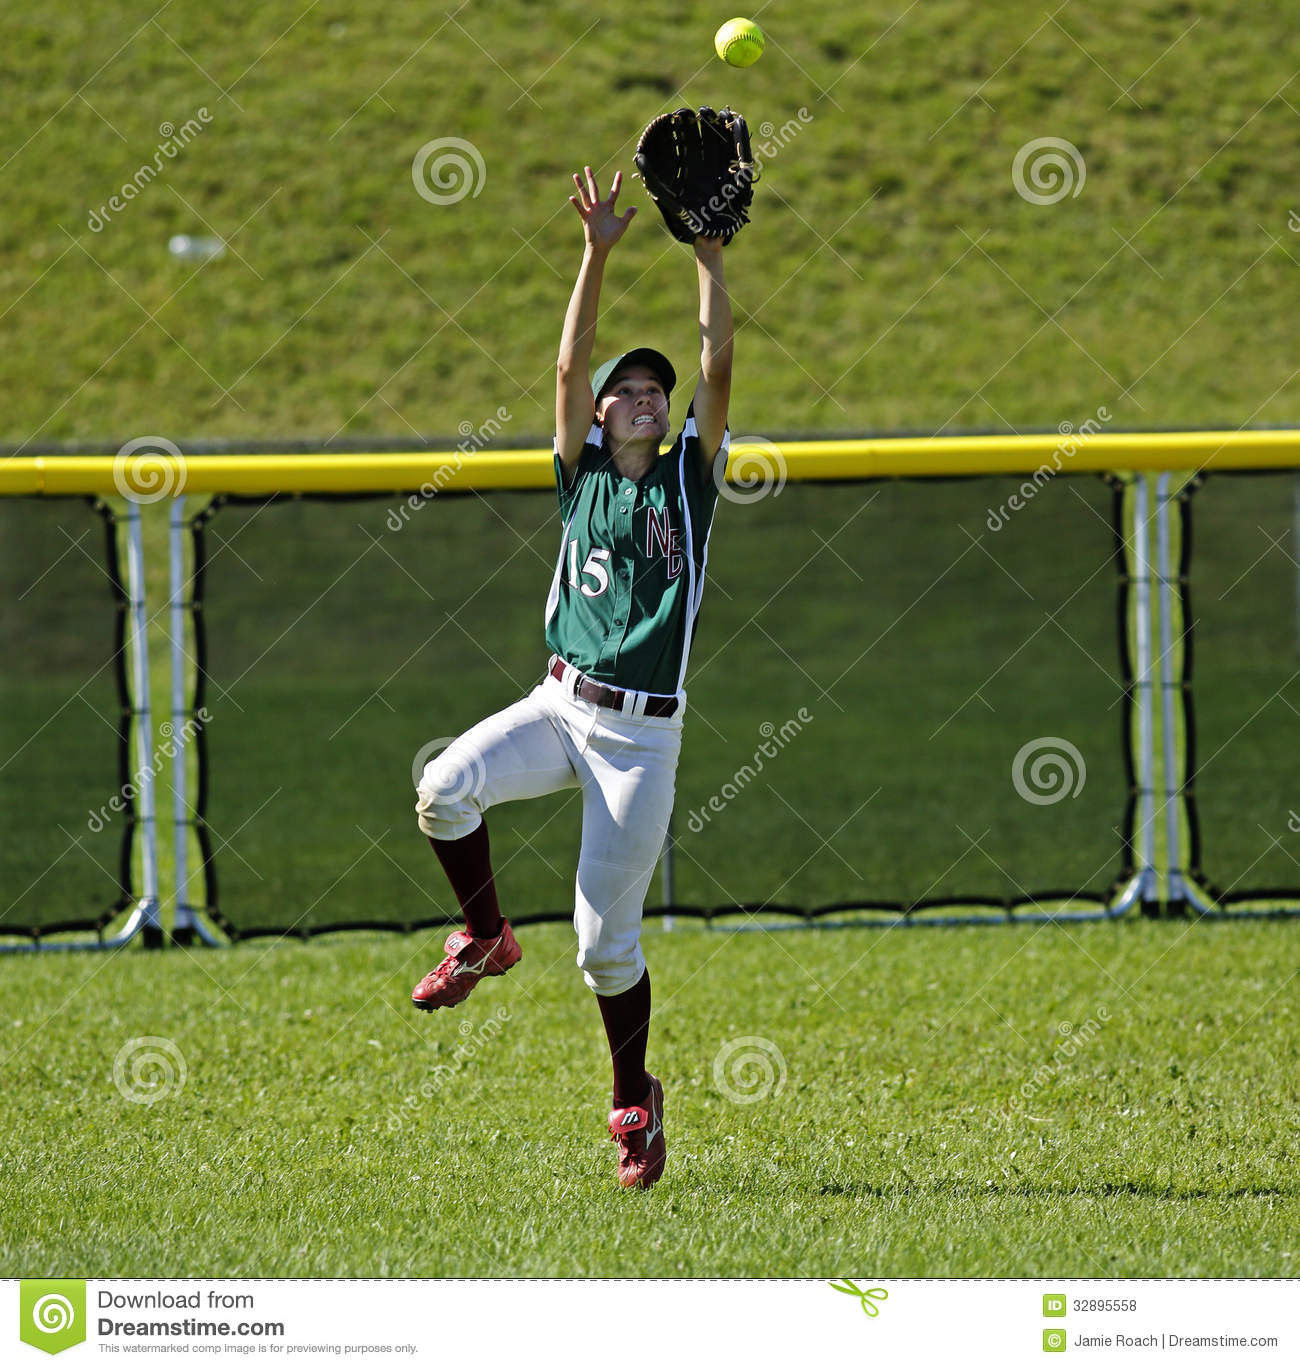 Softball In The Outfield Royalty Free Stock Image.